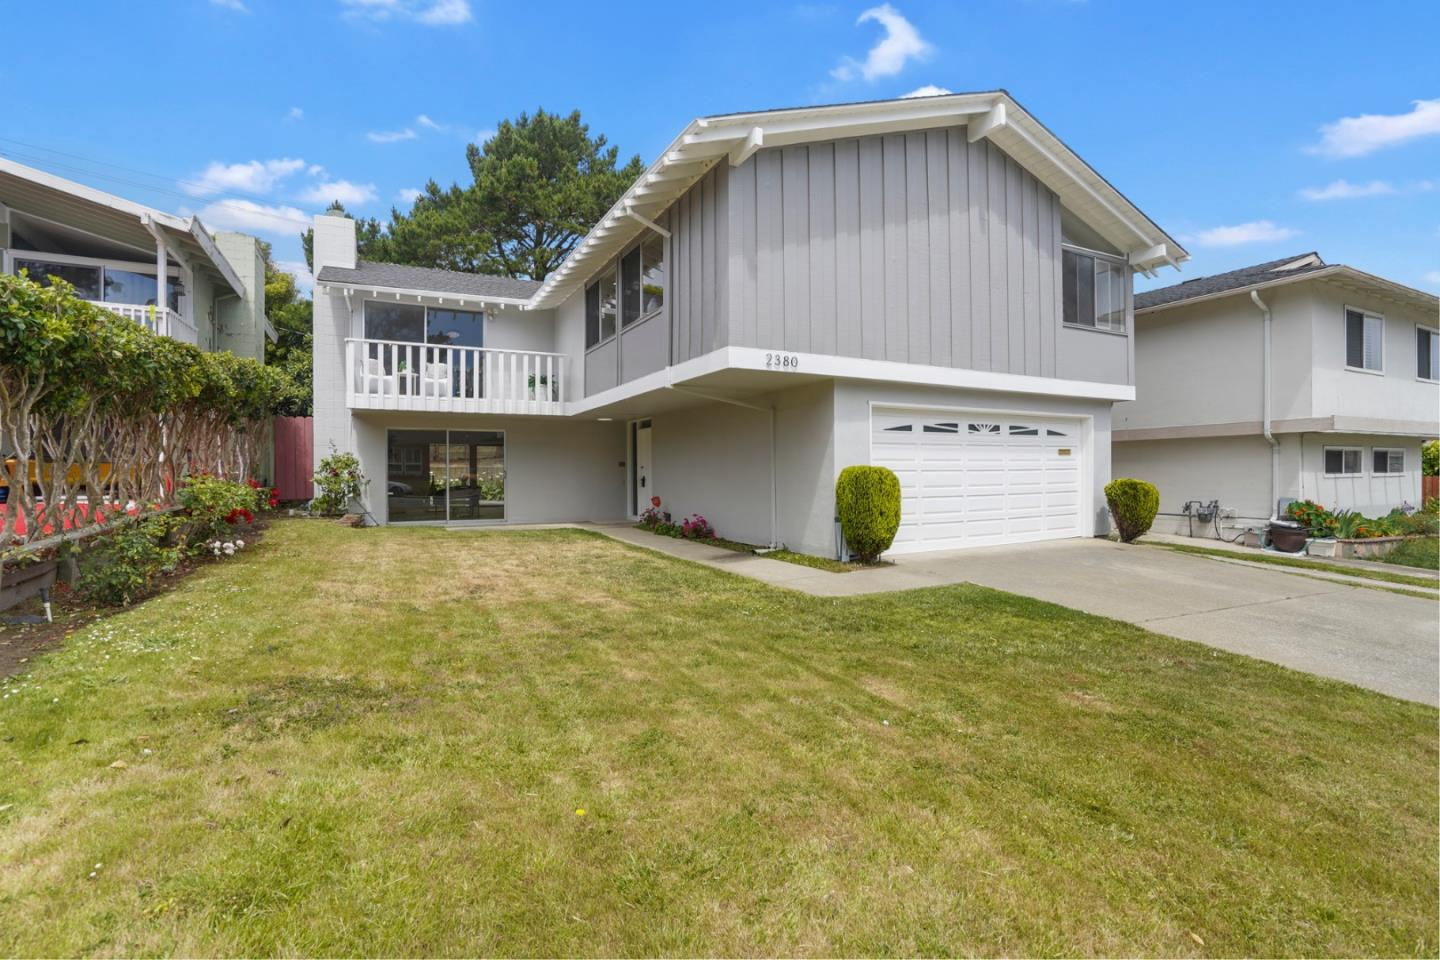 Virtual OH 5/31 11:00AM https://bit.ly/2ZOeVE7 Welcome to 2380 Olympic Dr! Located in the desirable Westborough neighborhood, this 2-story SFH is updated with modern styles in mind. Once you step in, you will feel how open the space is with vaulted ceilings; nice retreat for those work-from-home days. Brand new water-resistant laminate flooring downstairs and refinished HWD floors upstairs. New recessed lights and hanging chandeliers throughout the entire home to complement the natural lighting coming through the floor to ceiling windows. Downstairs has a sizable living room w. master bedroom & updated en-suite. Upstairs you will find a separate living & dining area; plenty of space for family gatherings. Eat-in kitchen w. quartz countertops & tiled backsplash. 2 spacious bedrooms w. a shared hallway bathroom and 1 master bedroom w. en-suite. Fresh exterior & interior paint. 2-car garage & separate laundry room. Short distance to Westborough Square. Drive just minutes to Highway I-280.